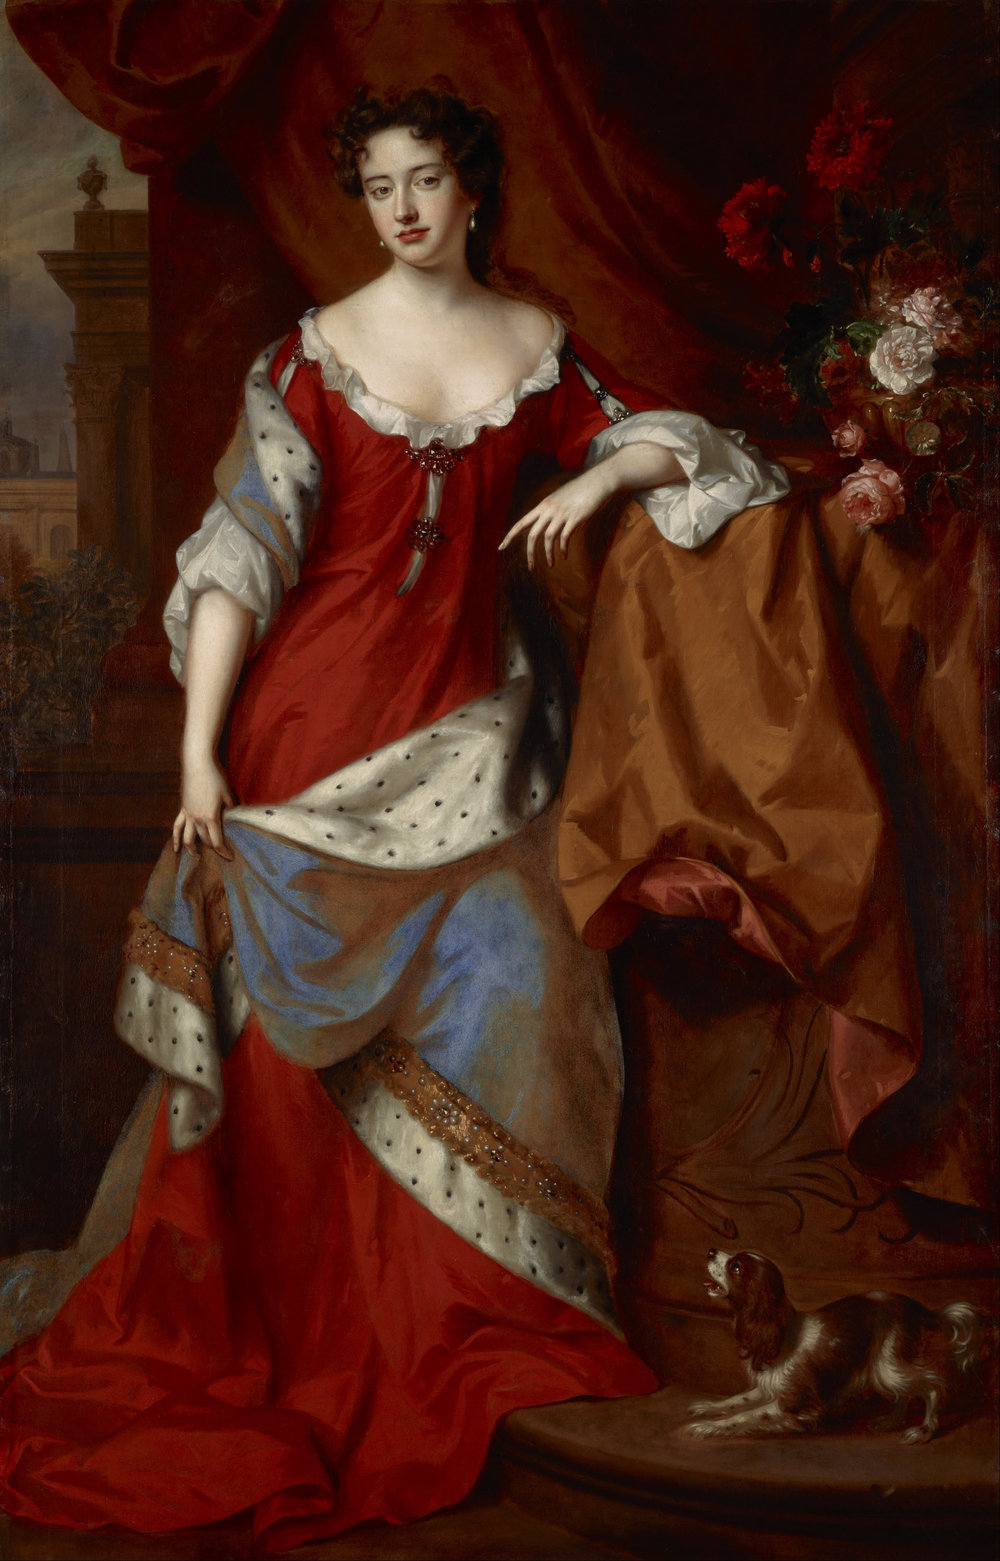 The future Queen Anne of Great Britain as Princess of Denmark, painted by Willem Wissing and Jan van der Vaart (1685, oil on canvas). Scottish National Gallery.